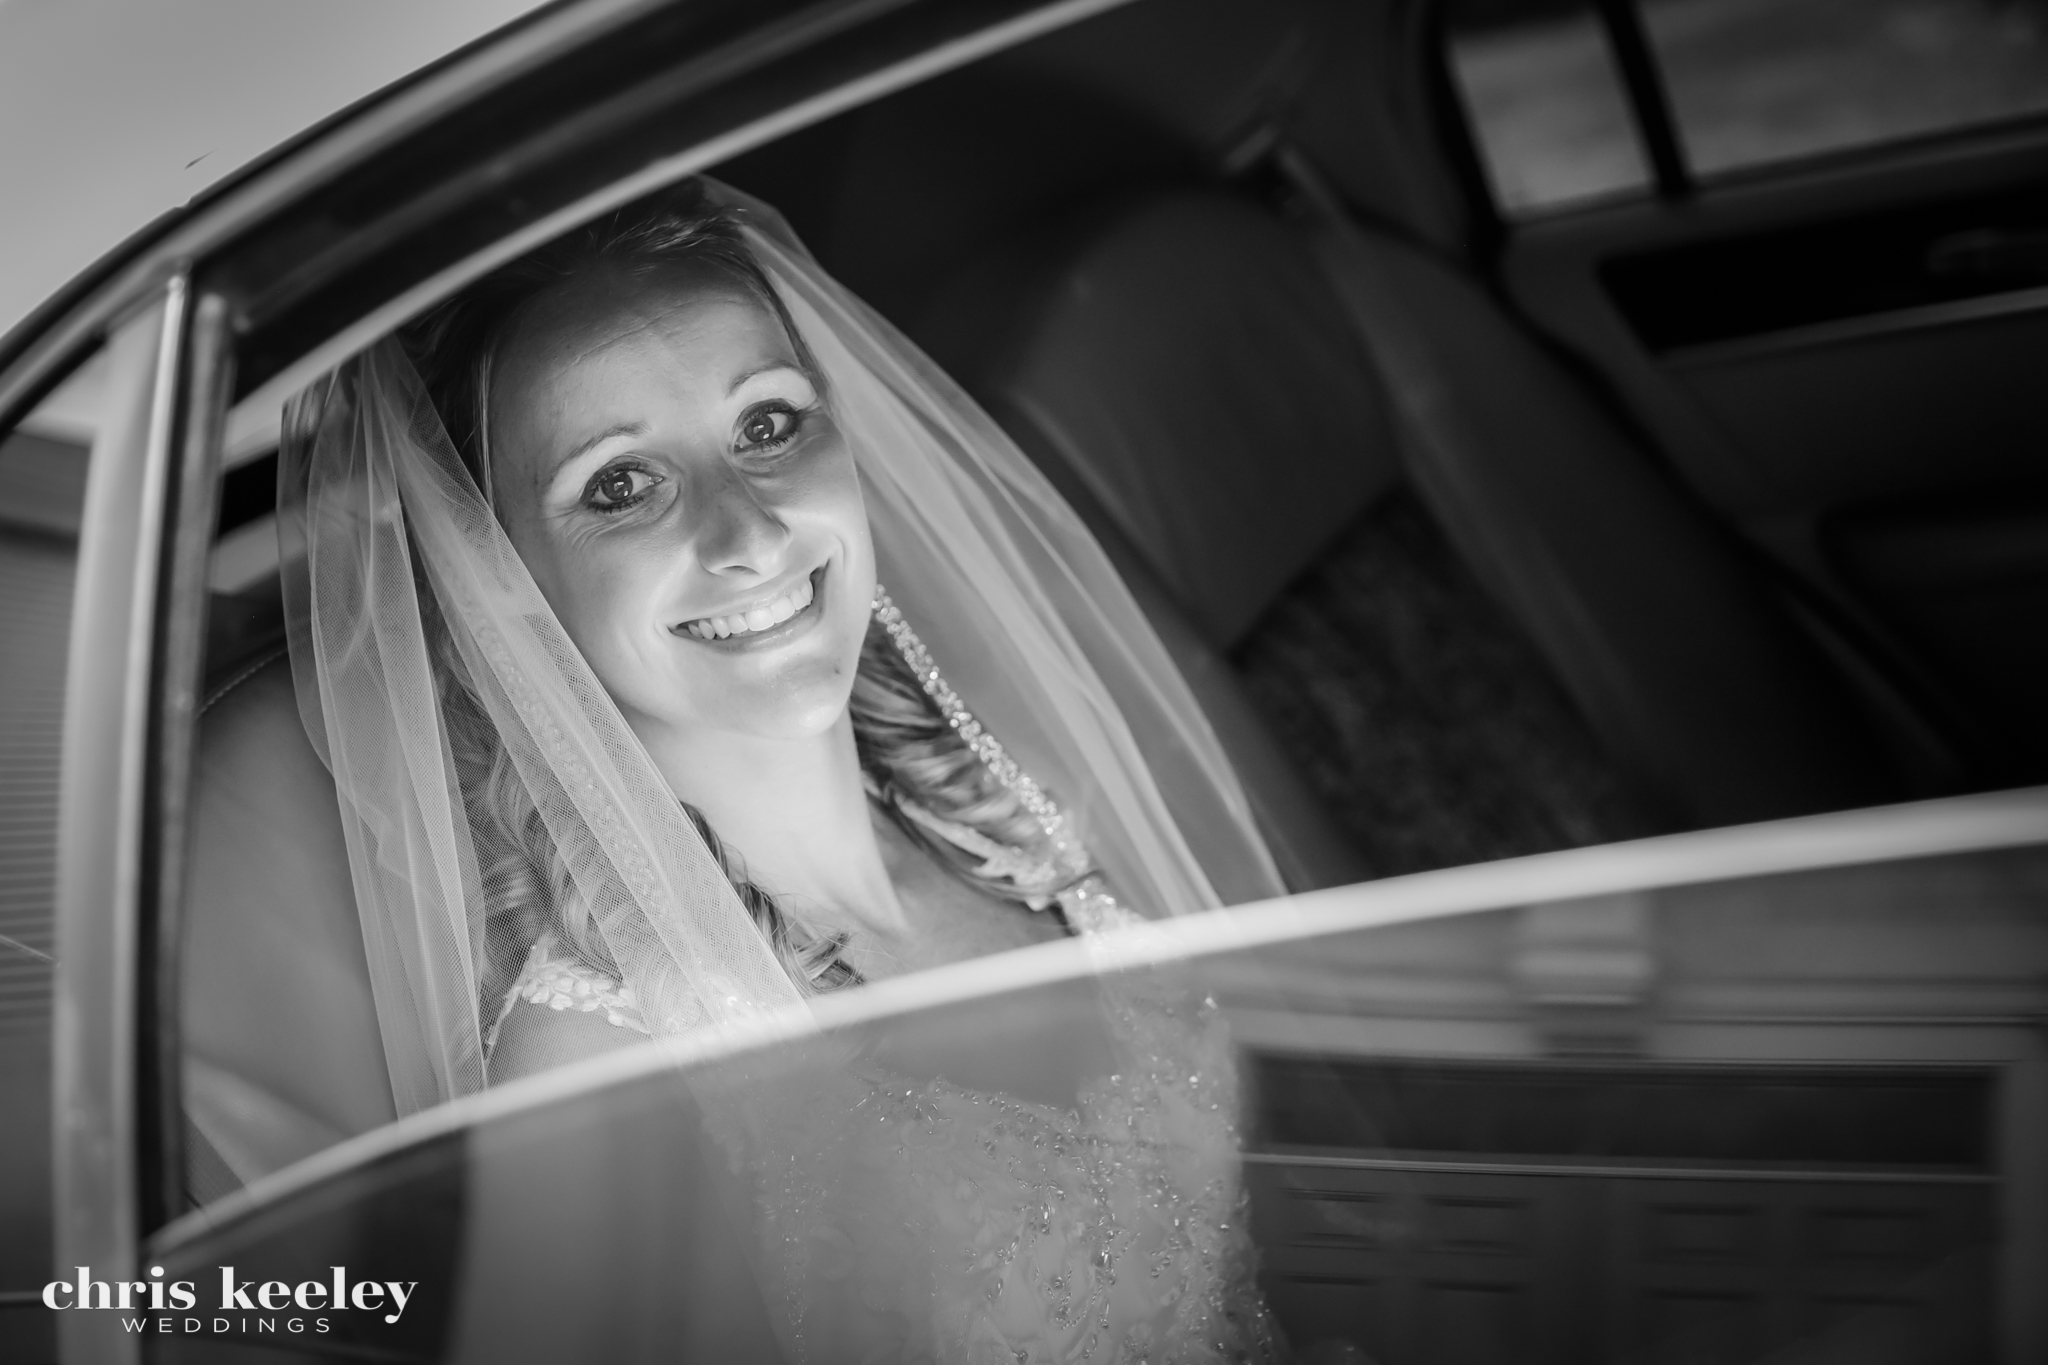 Chris-Keeley-Weddings-Rhode-Island-Massachusetts-09.jpg